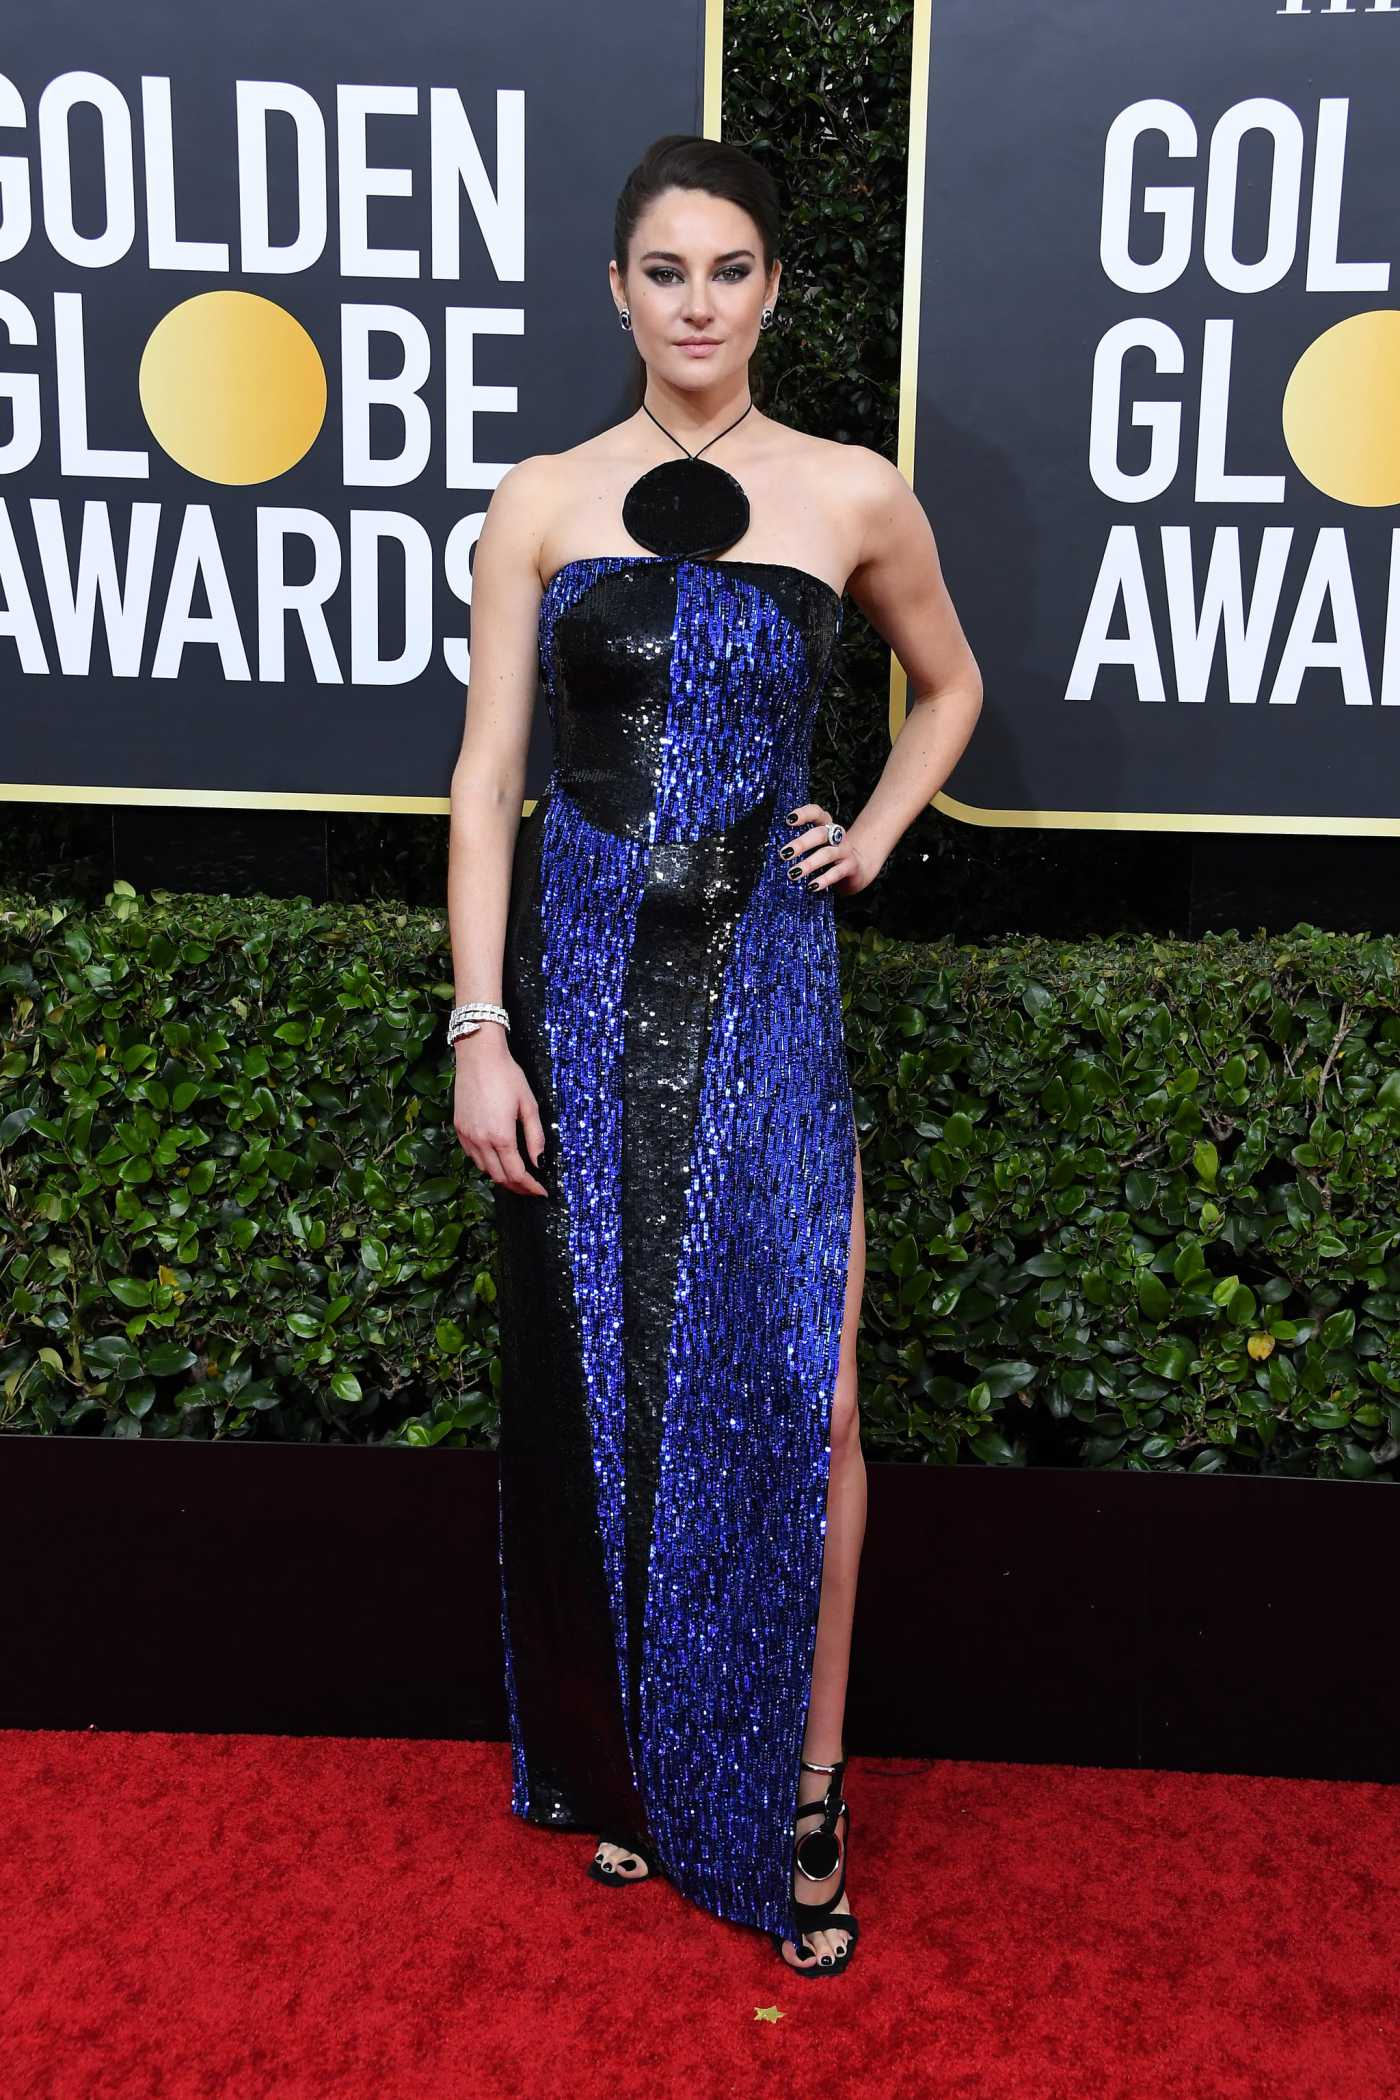 Shailene Woodley Attends the 77th Annual Golden Globe Awards at the Beverly Hilton Hotel in Beverly Hills 01/05/2020